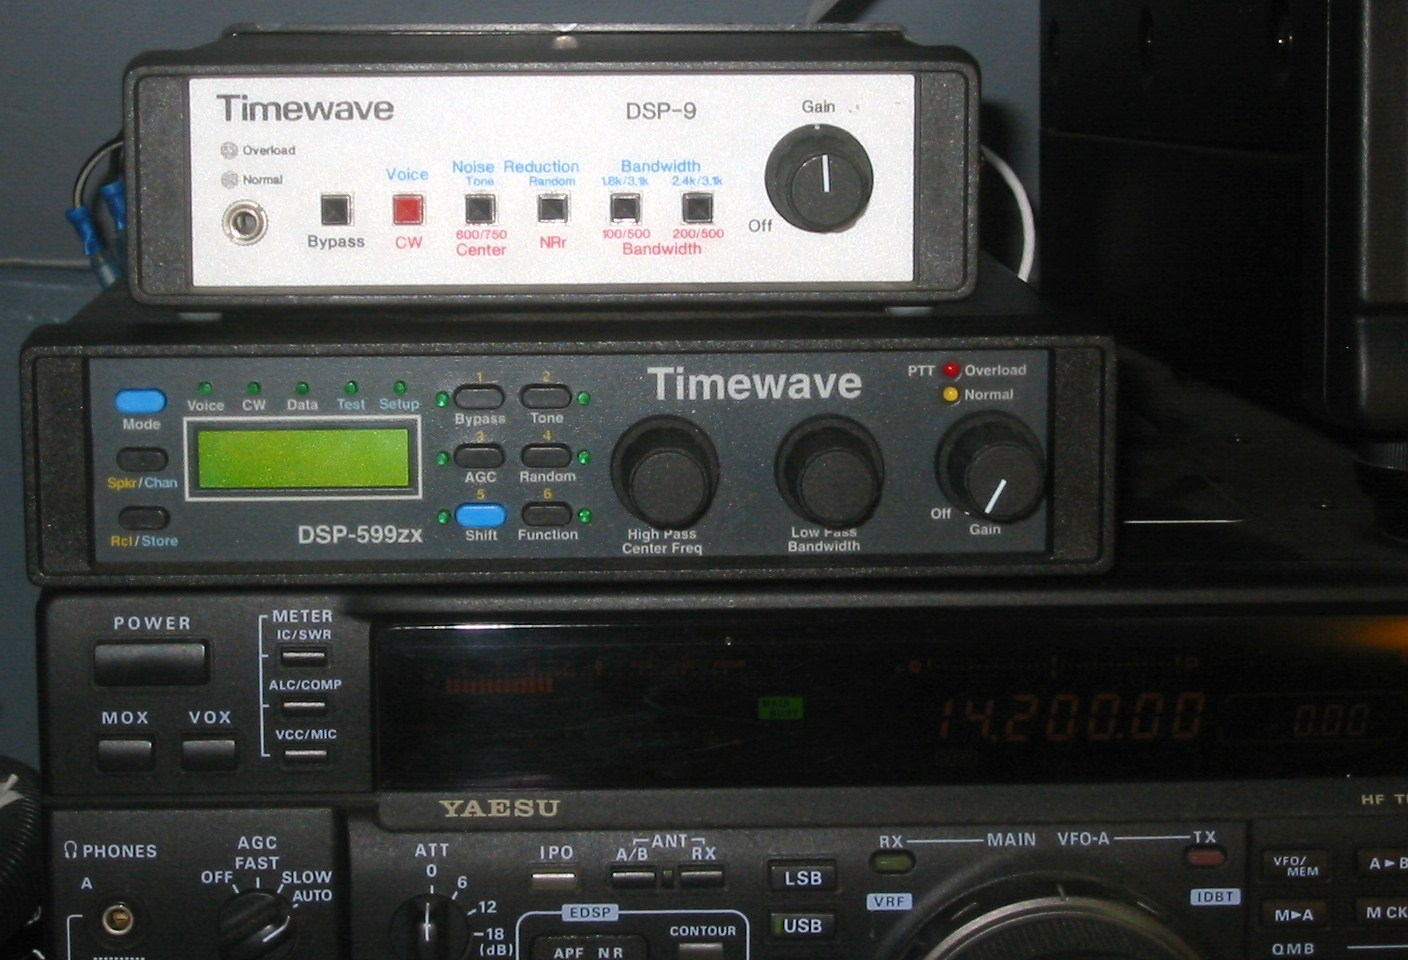 Timewave DSP-9 and 599zx